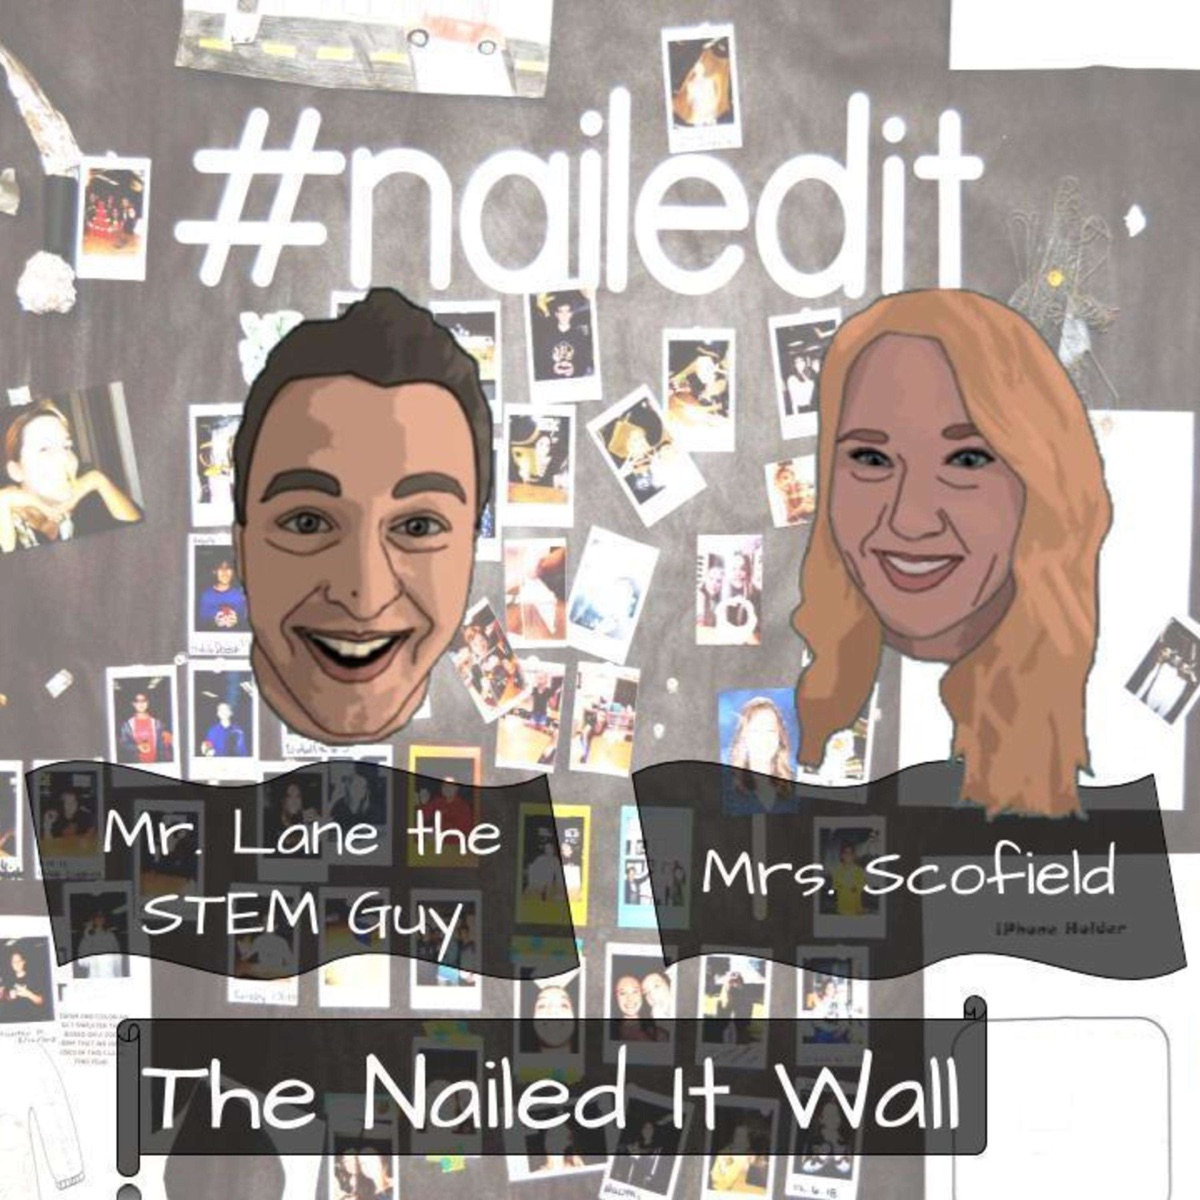 The Nailed It Wall